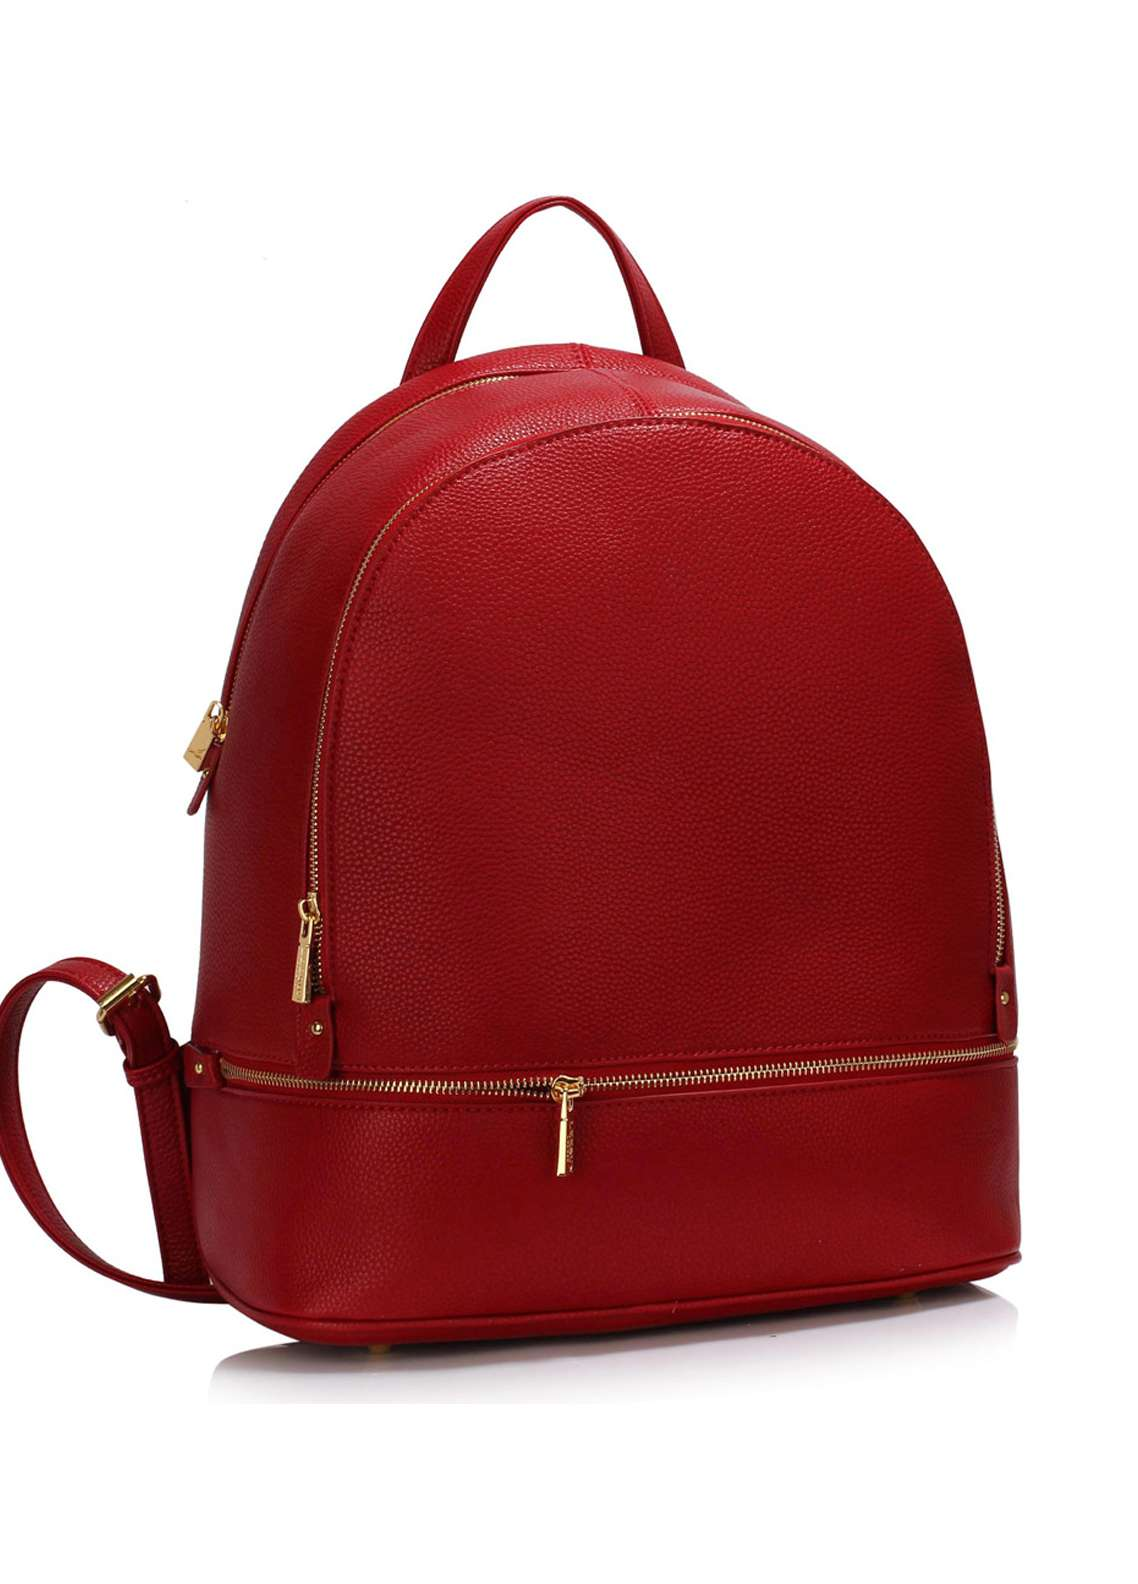 Leesun London  Faux Leather Backpack Bags  for Unisex  Red with Plain Texture